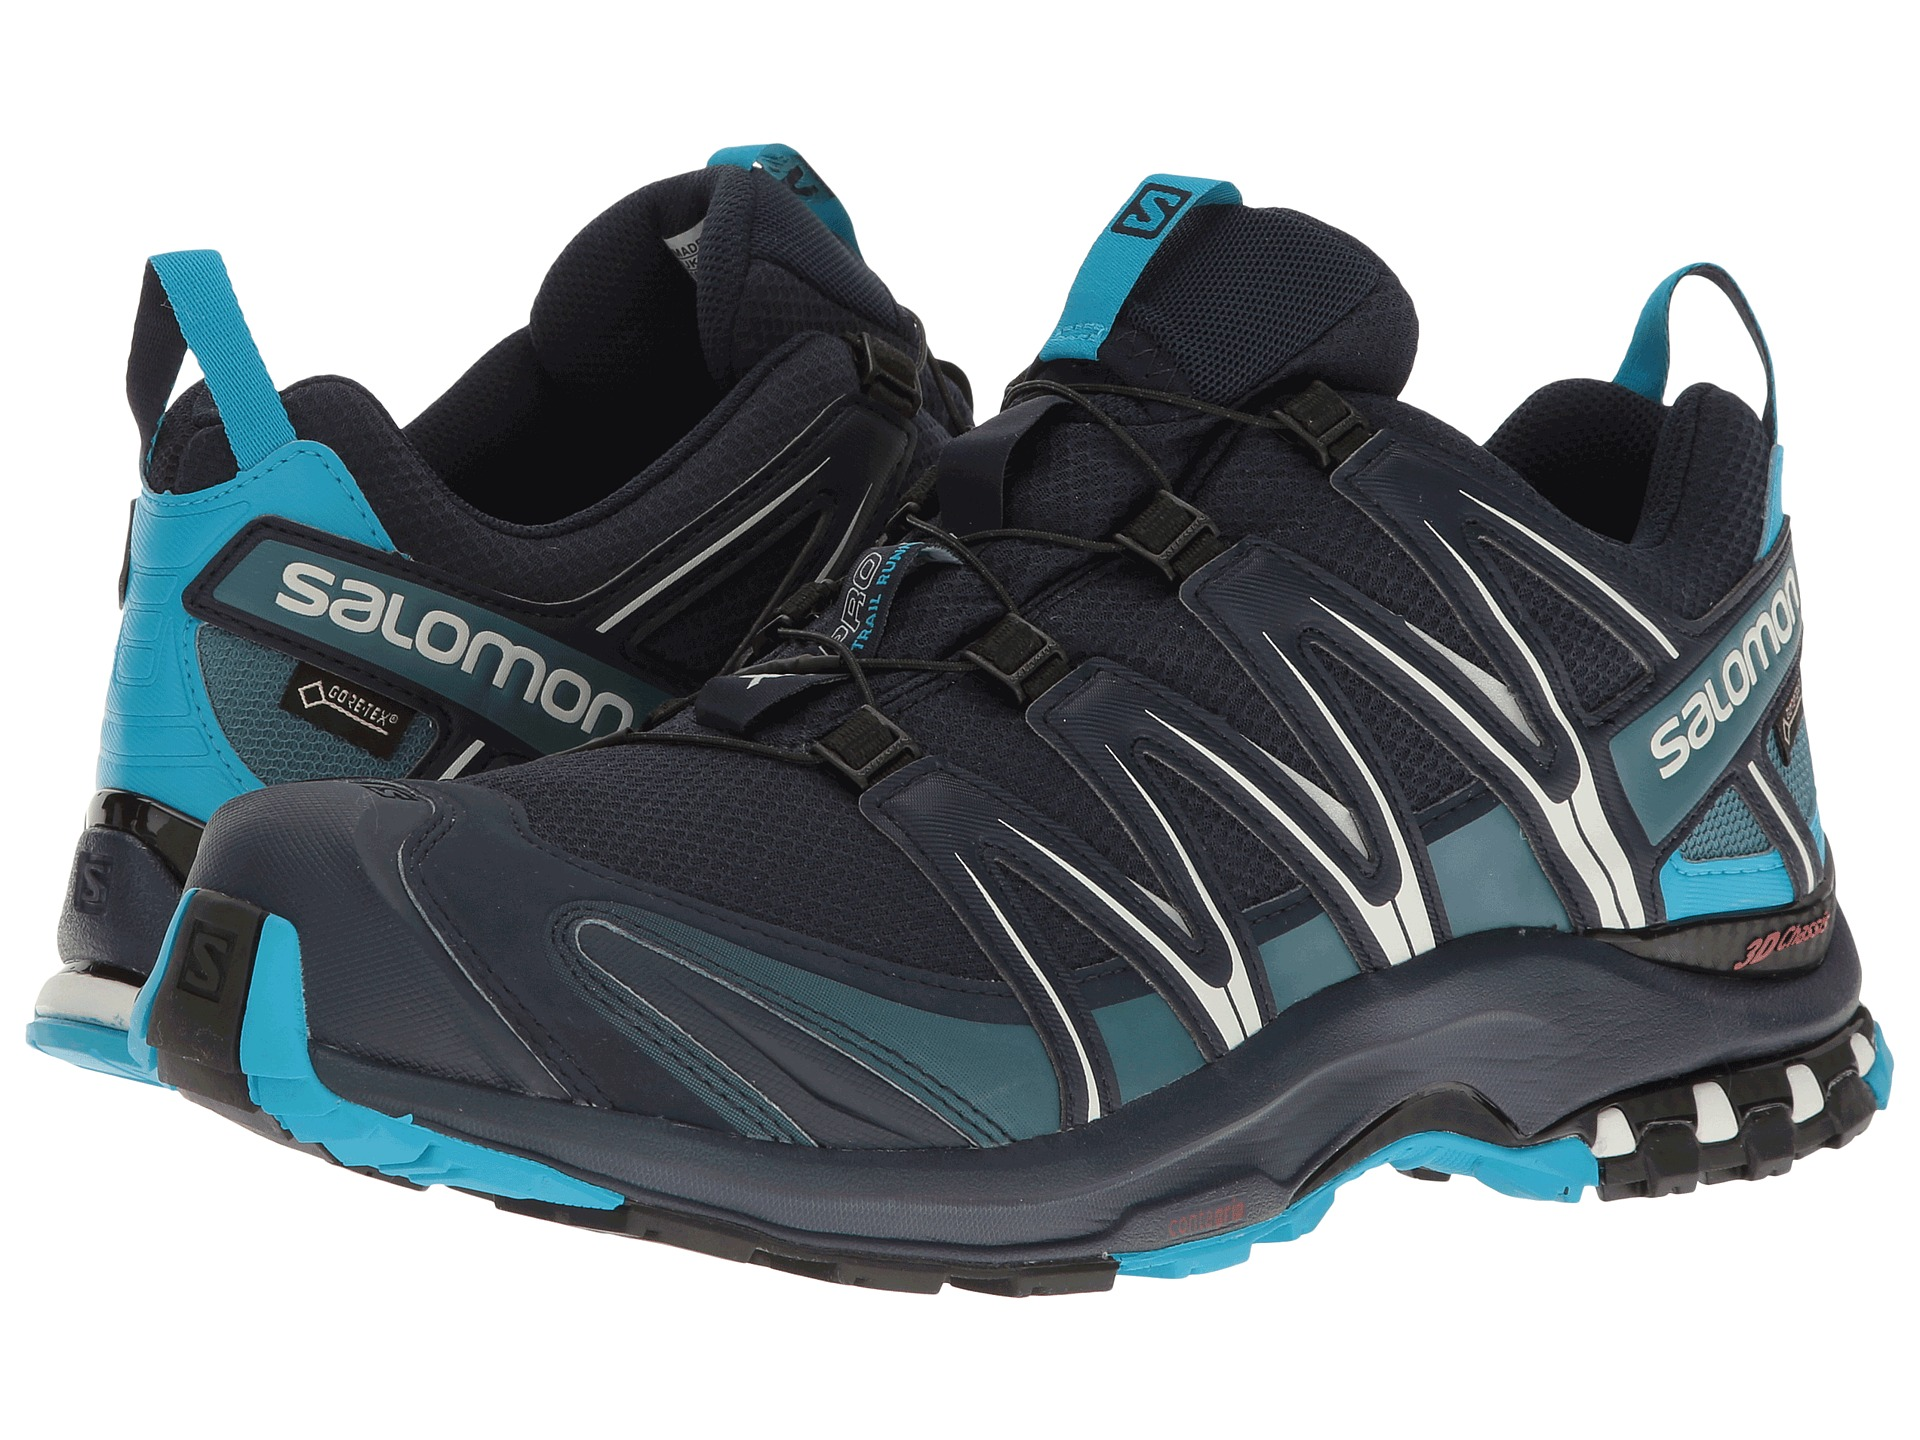 b171772e2df Men's Salomon XA Pro 3D GTX Shoe | Hiking & Trail Footwear - Trailblaze